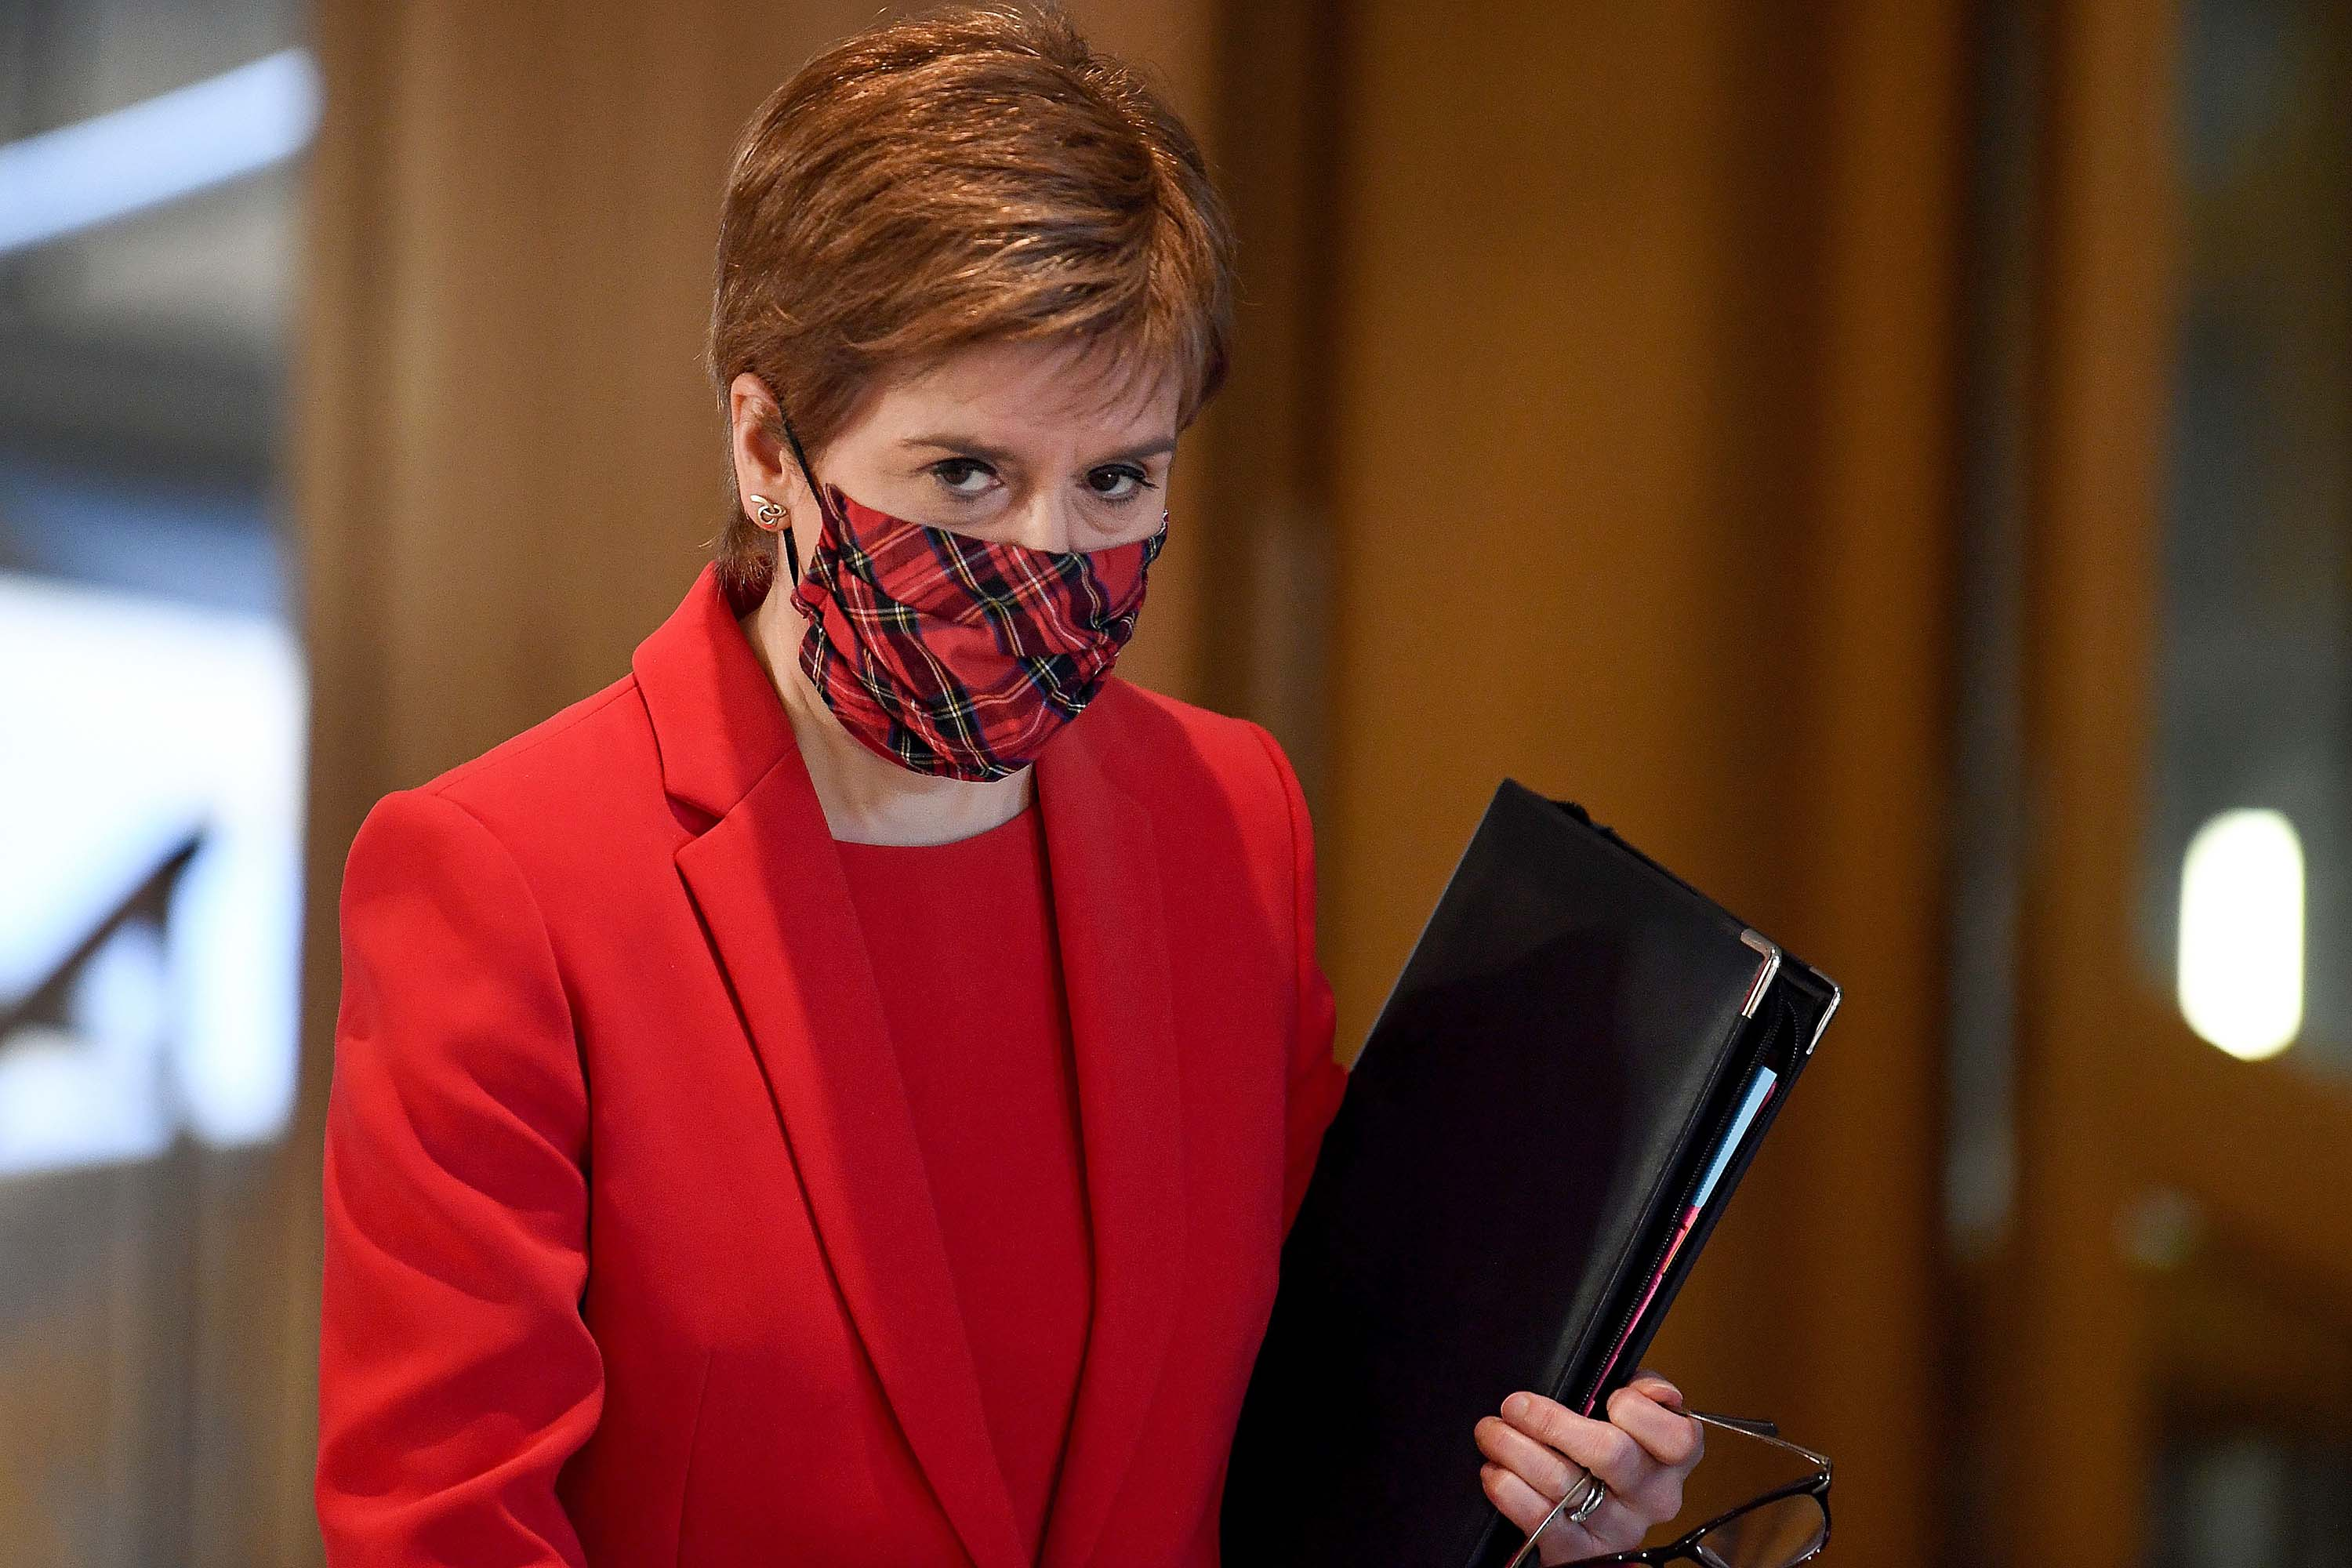 Scotland's First Minister Nicola Sturgeon is pictured at the Scottish Parliament in Edinburgh on December 30.